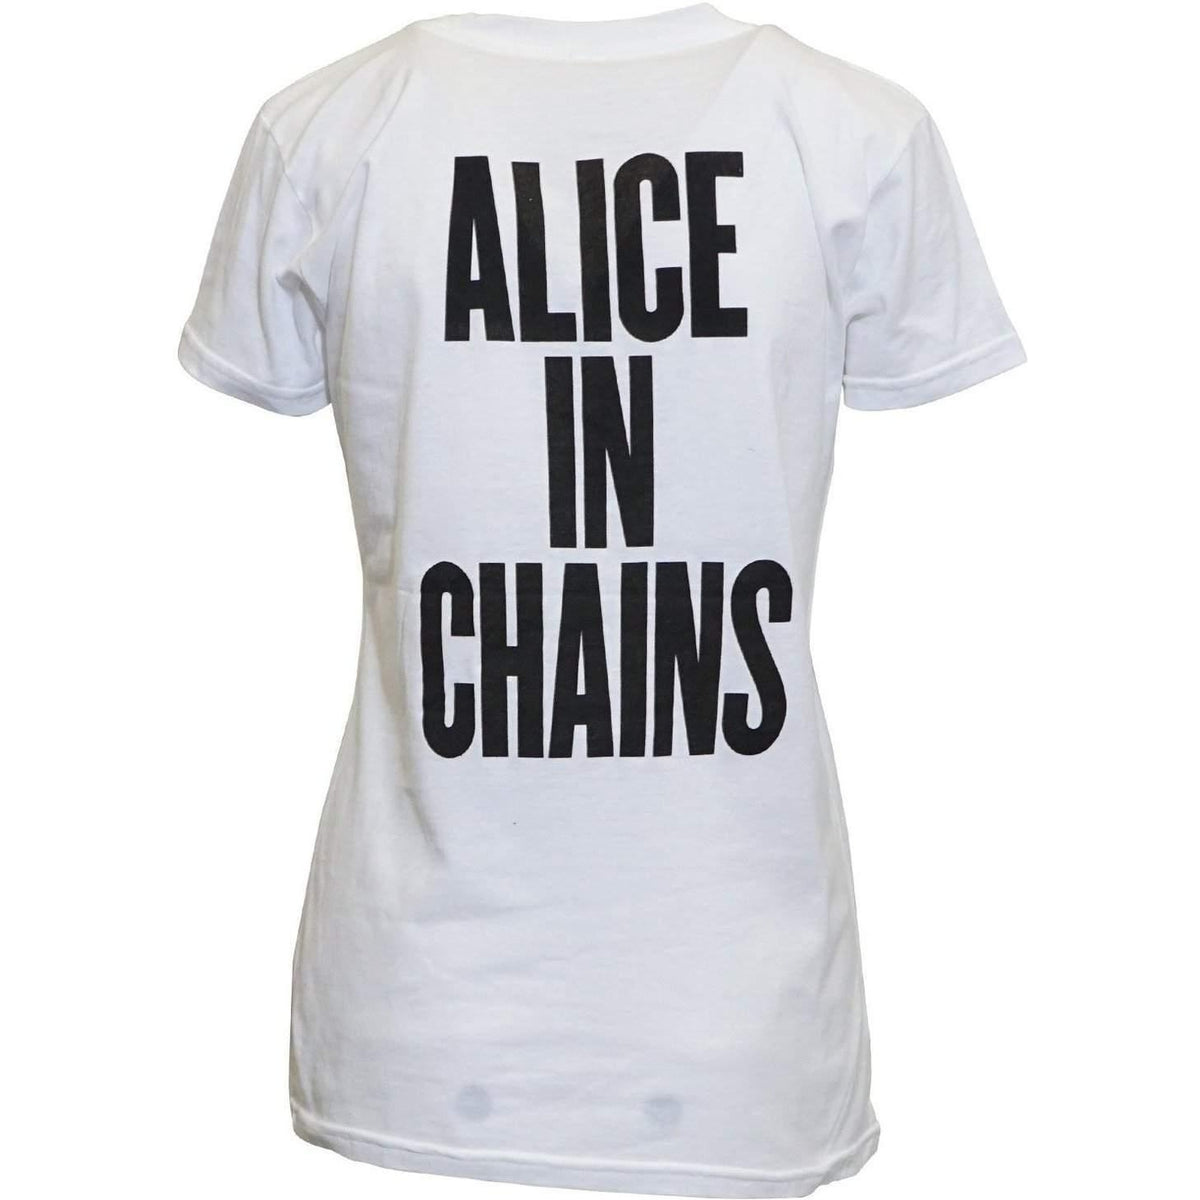 ALICE IN CHAINS IF I WOULD COULD YOU? T SHIRT